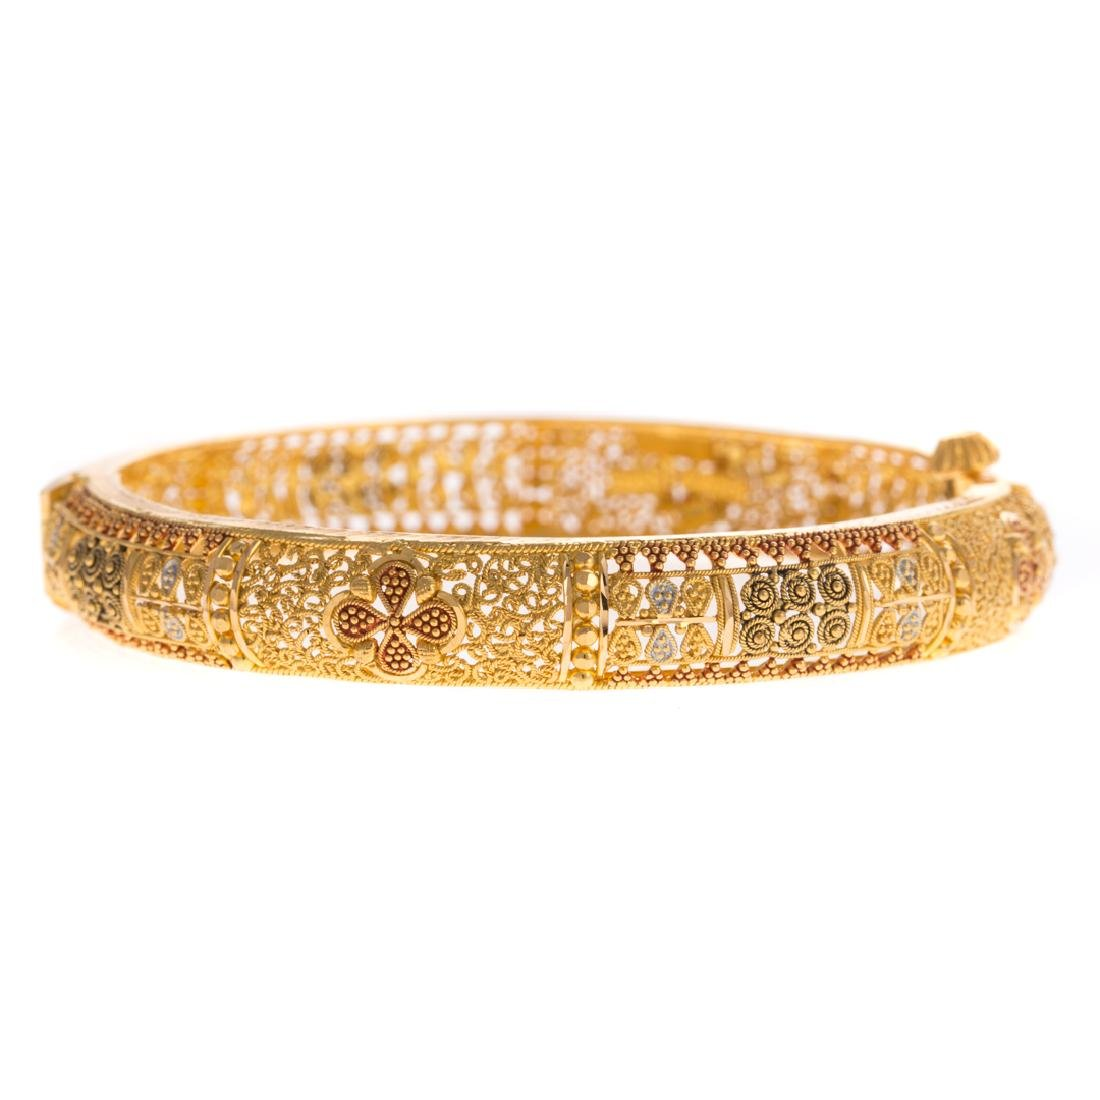 A Lady's 22K Hinged Bangle Bracelet